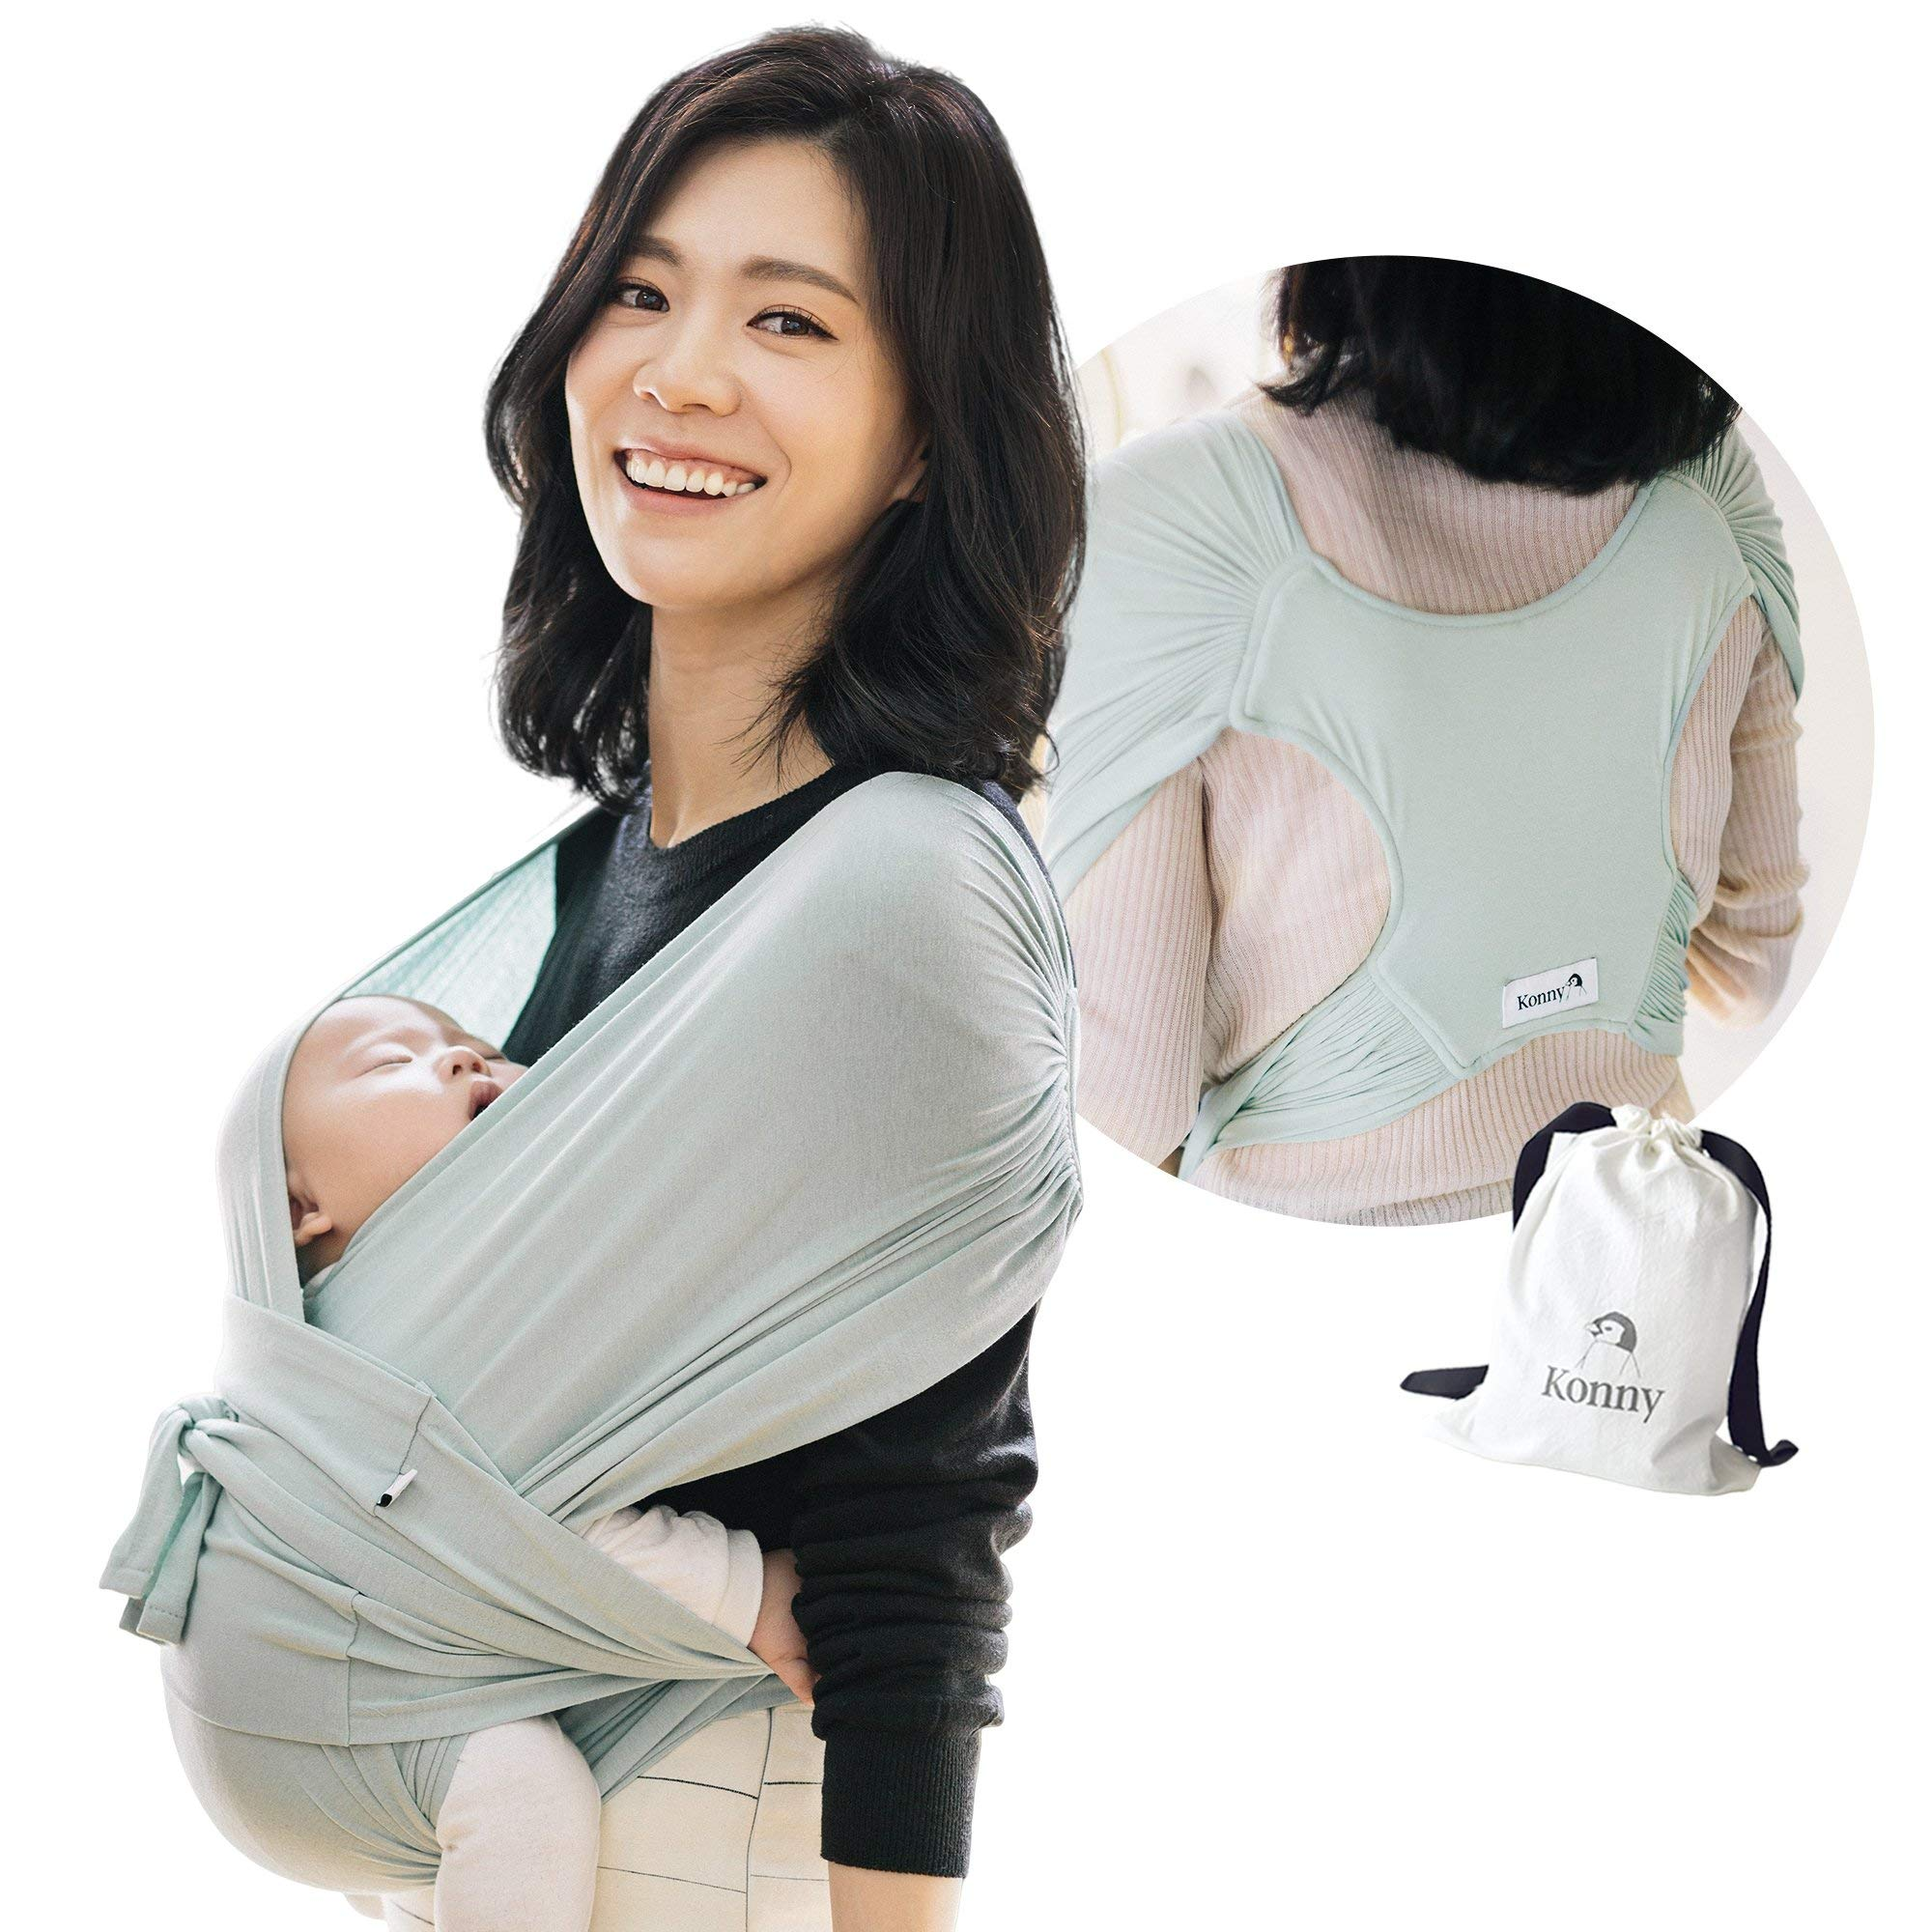 Konny Baby Carrier | Ultra-Lightweight, Hassle-Free Baby Wrap Sling | Newborns, Infants to 44 lbs Toddlers | Soft and Breathable Fabric | Sensible Sleep Solution (Mint, S)